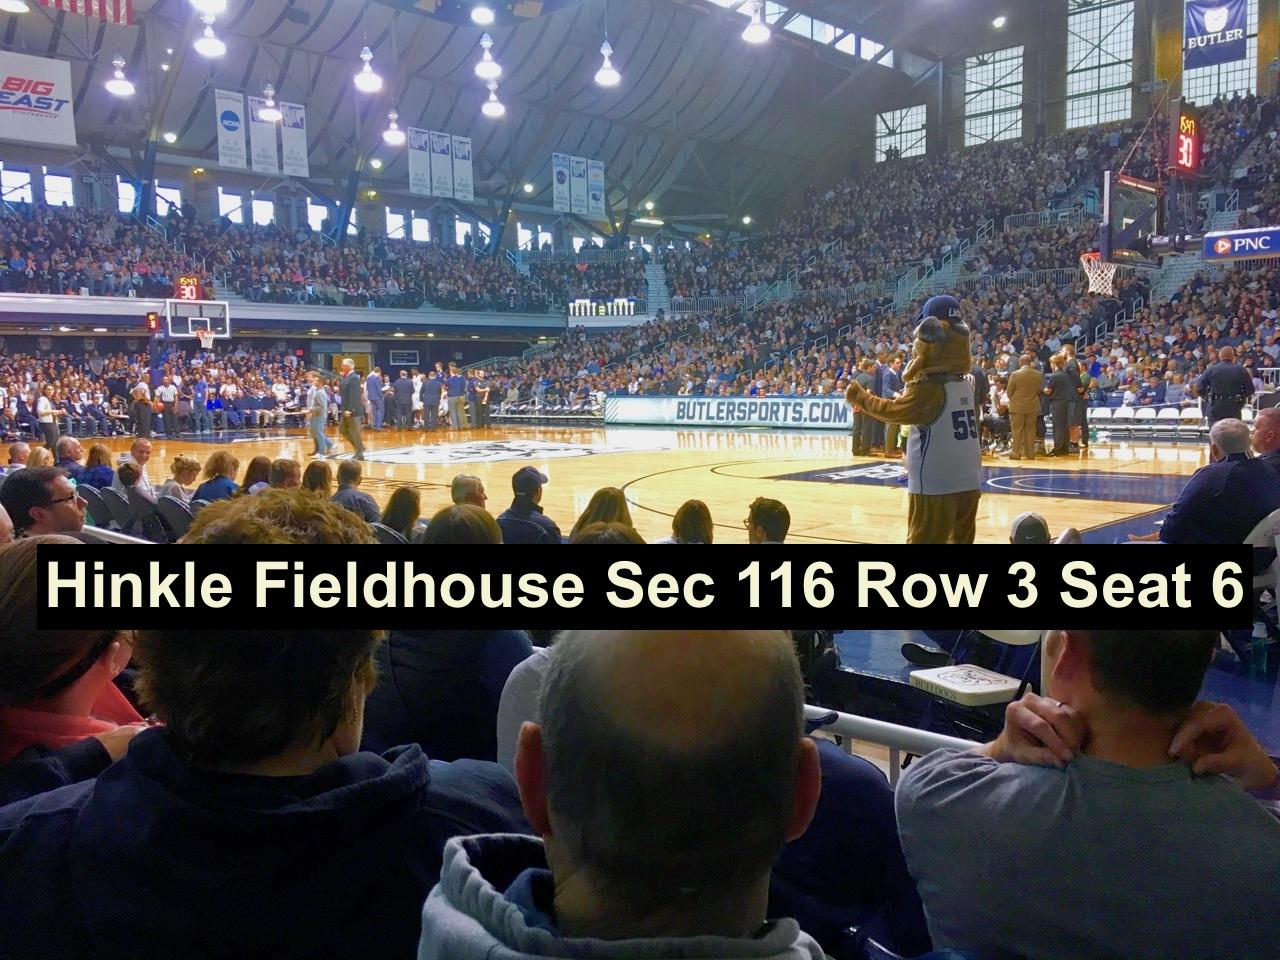 Hinkle Fieldhouse Section 116 Row 3 Seat 6